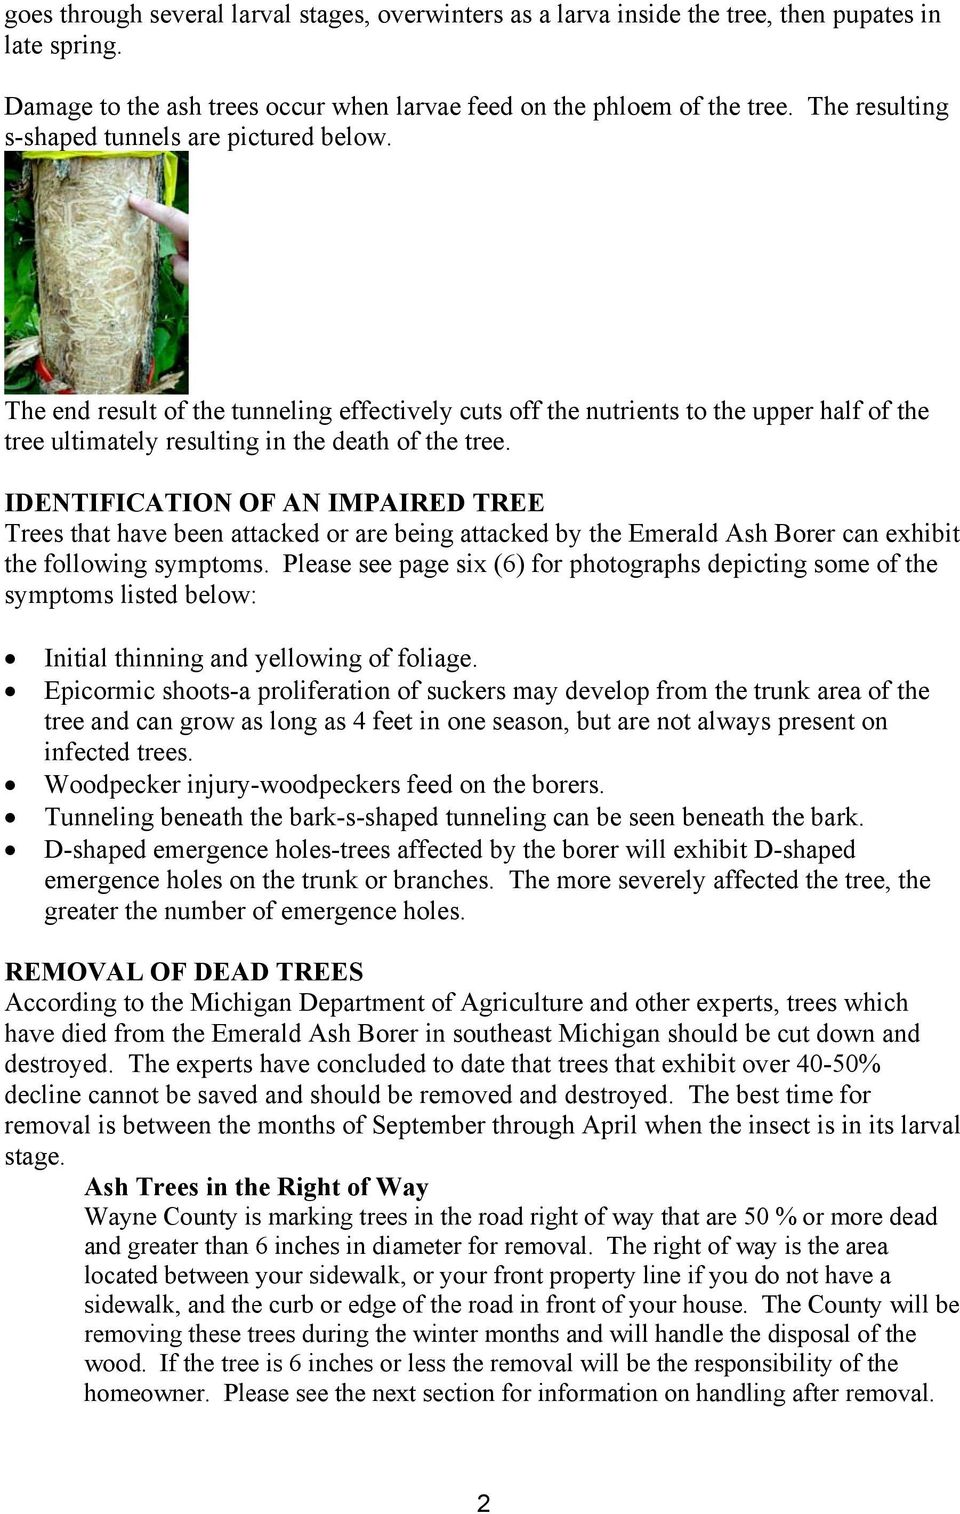 IDENTIFICATION OF AN IMPAIRED TREE Trees that have been attacked or are being attacked by the Emerald Ash Borer can exhibit the following symptoms.